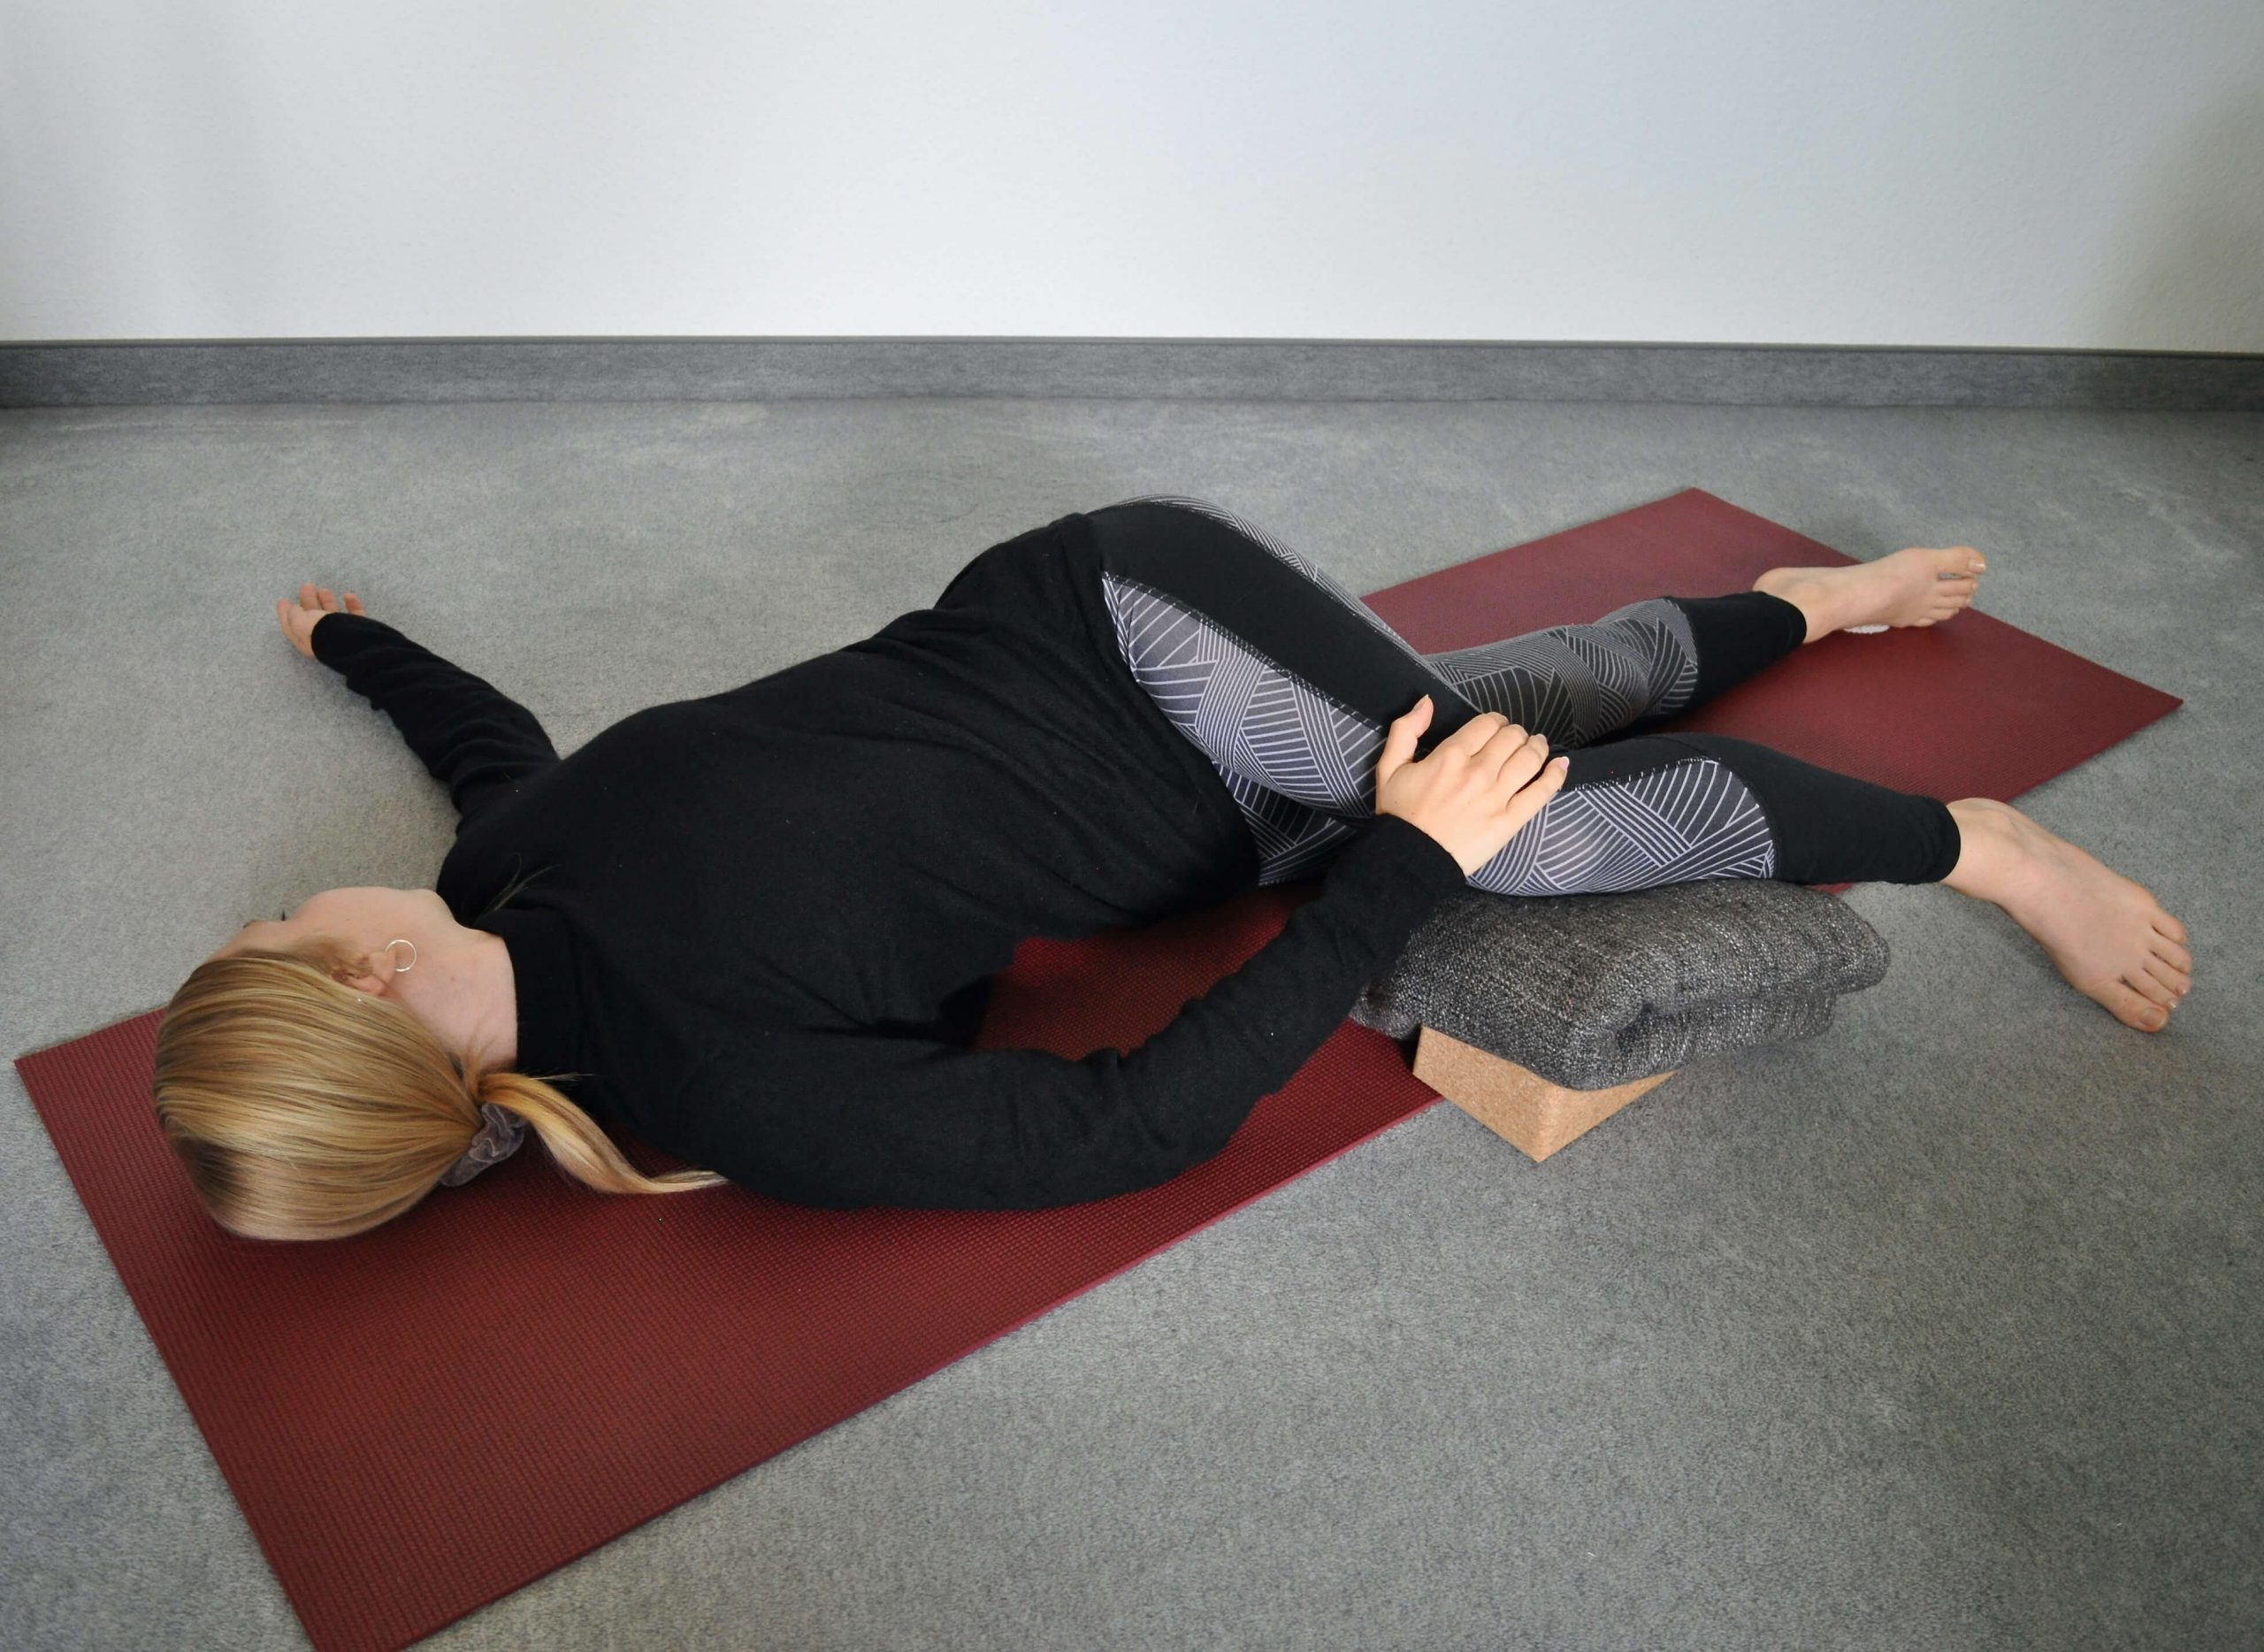 Ronja, Vulvani, Yoga während der Periode, Zyklus-Yoga, yoga during your period, yoga for your cycle, cycle yoga, period yoga, Perioden-Yoga, Menstruations-Yoga, Yoga und der Zyklus, yoga and the cycle, yoga and the menstrual cycle, Asana, menstruation yoga poses, Yogaposen für die Periode, Yogaposen für die Menstruation, Yogaposen für den Zyklus, yoga poses for your period, Supta Matsyendrasana, Liegende Drehung, supine spinal twist